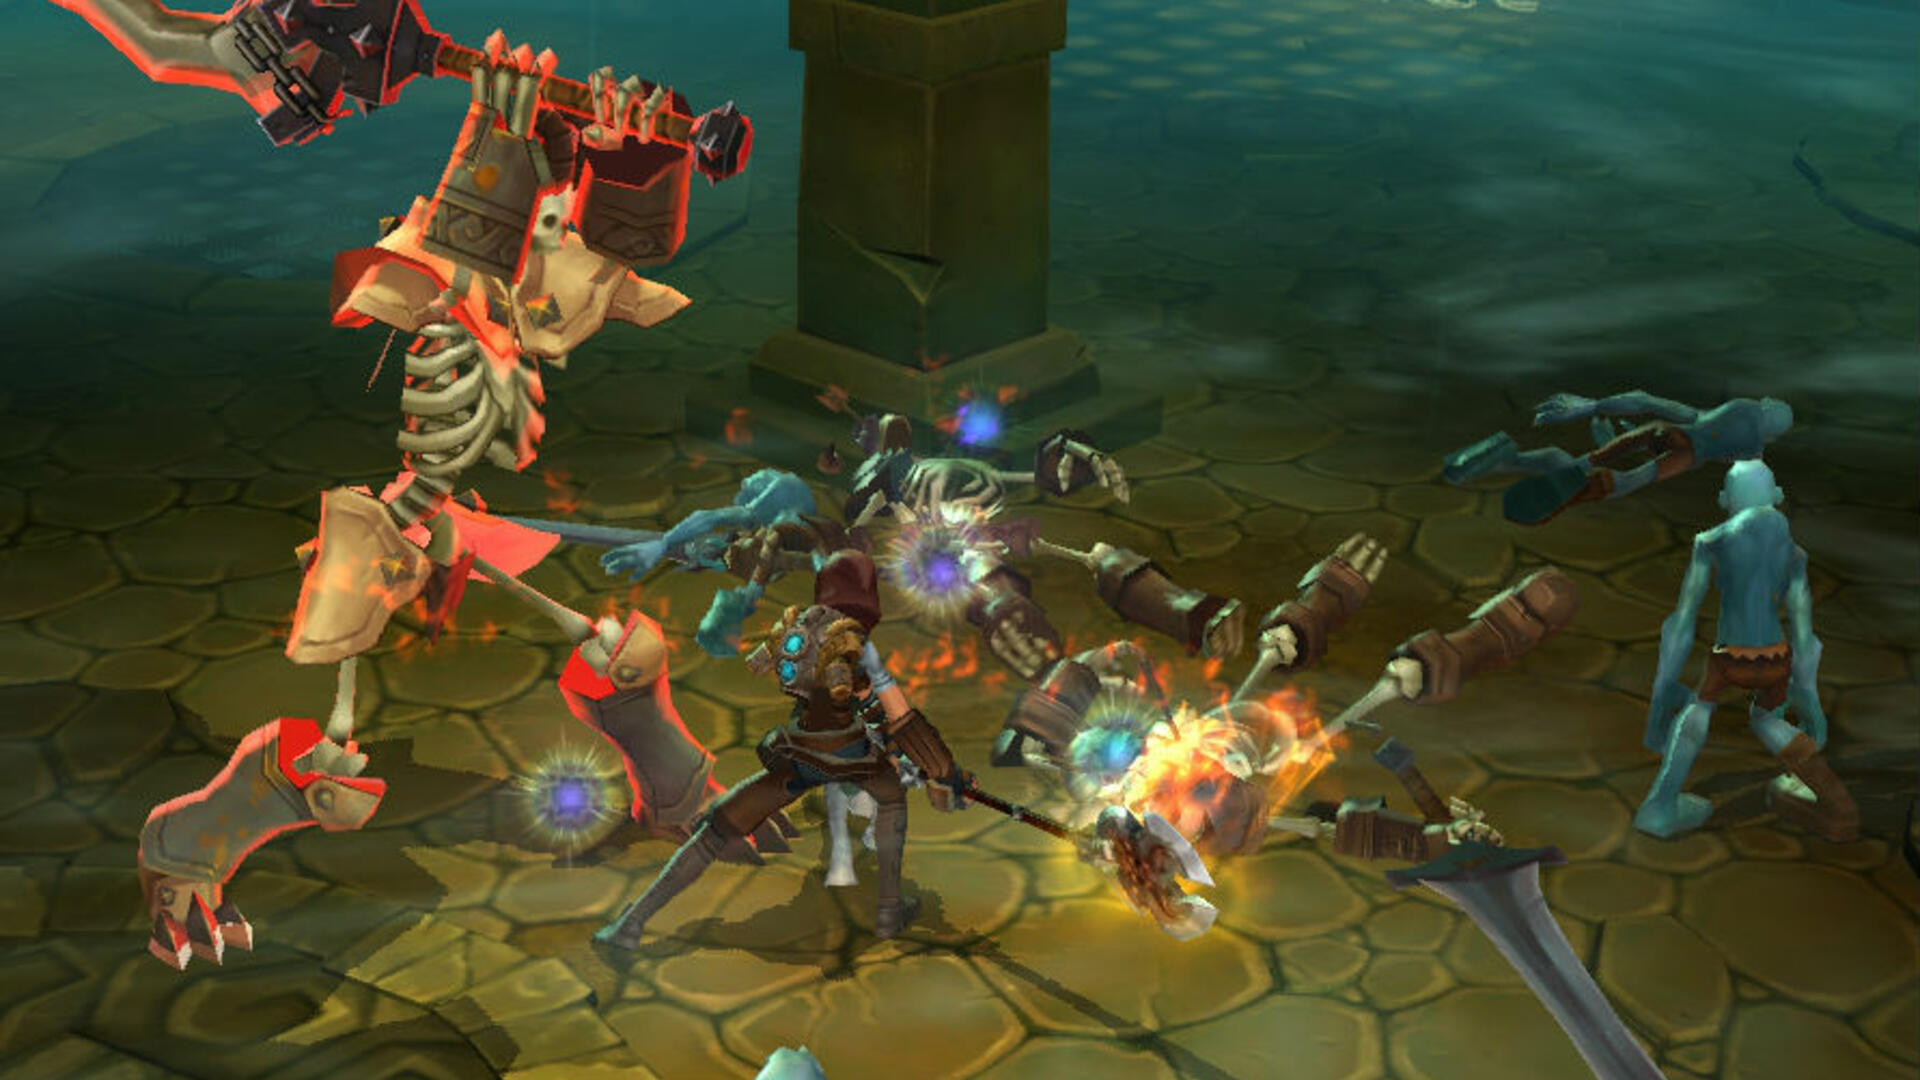 Diablo Will Soon Have Some Competition With Torchlight 2 Coming to Switch